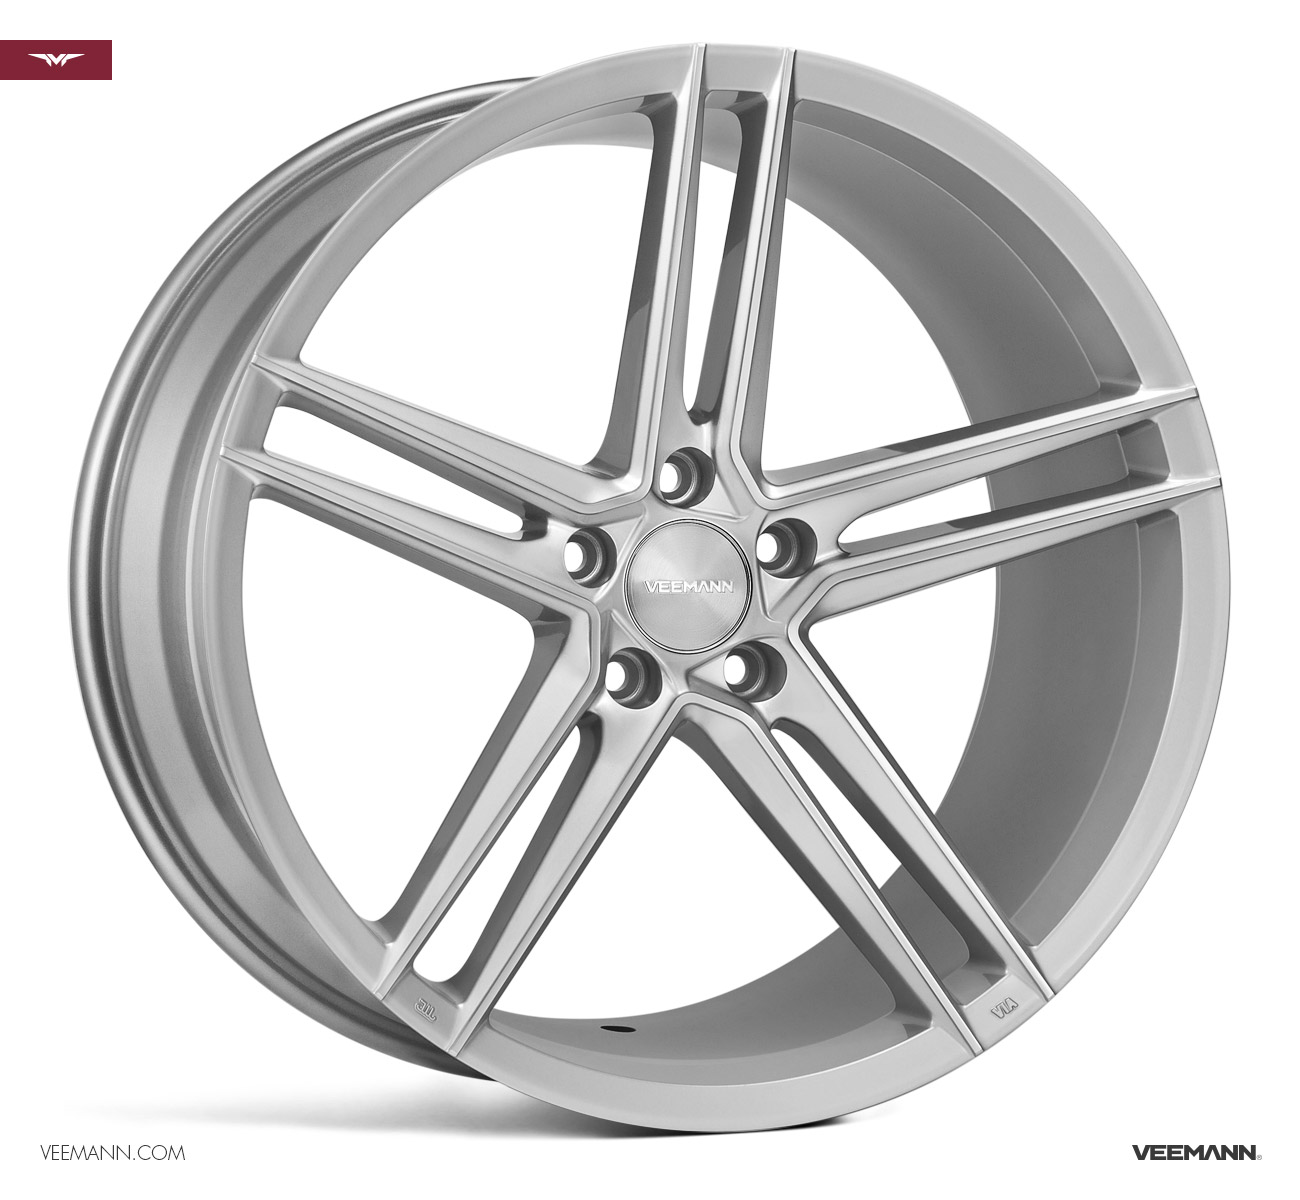 "NEW 21"" VEEMANN V-FS33 ALLOY WHEELS IN SILVER POL WITH WIDER 10.5"" REAR"